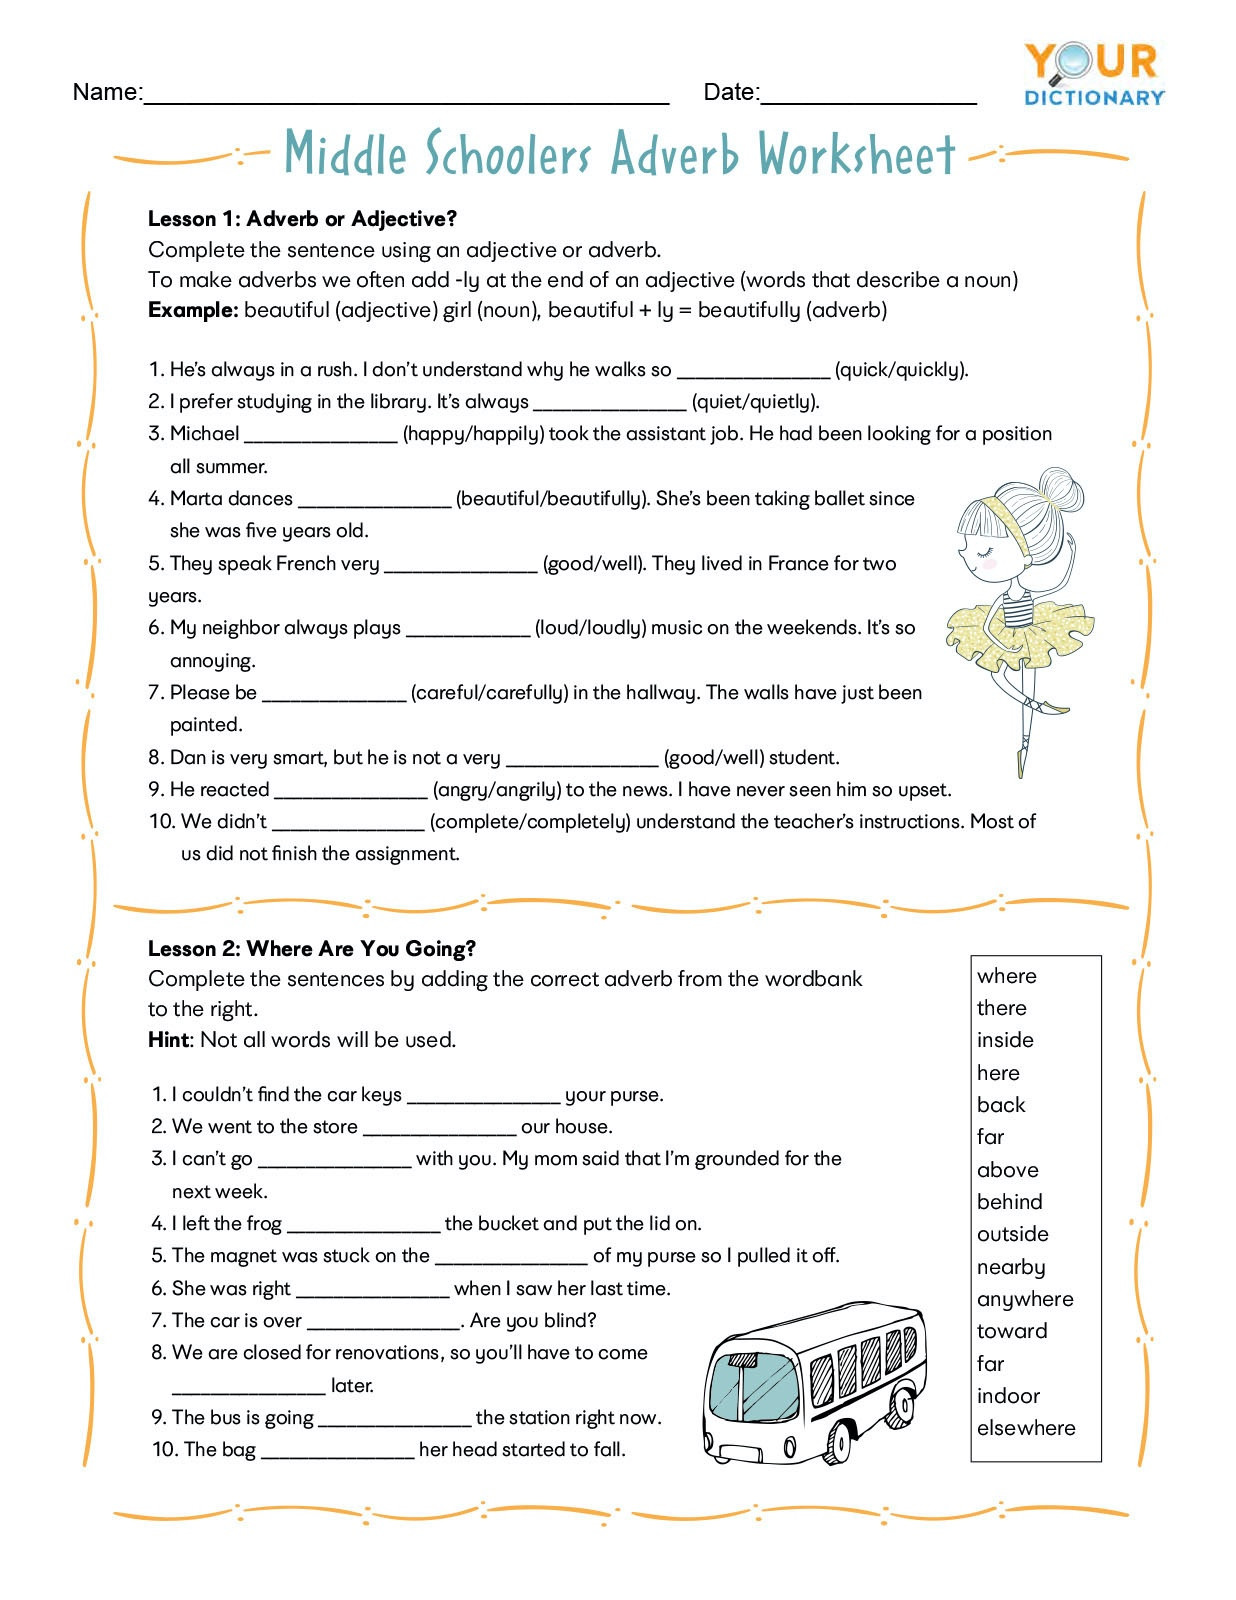 7th Grade Grammar Worksheets Pdf Adverb Worksheets for Elementary and Middle School